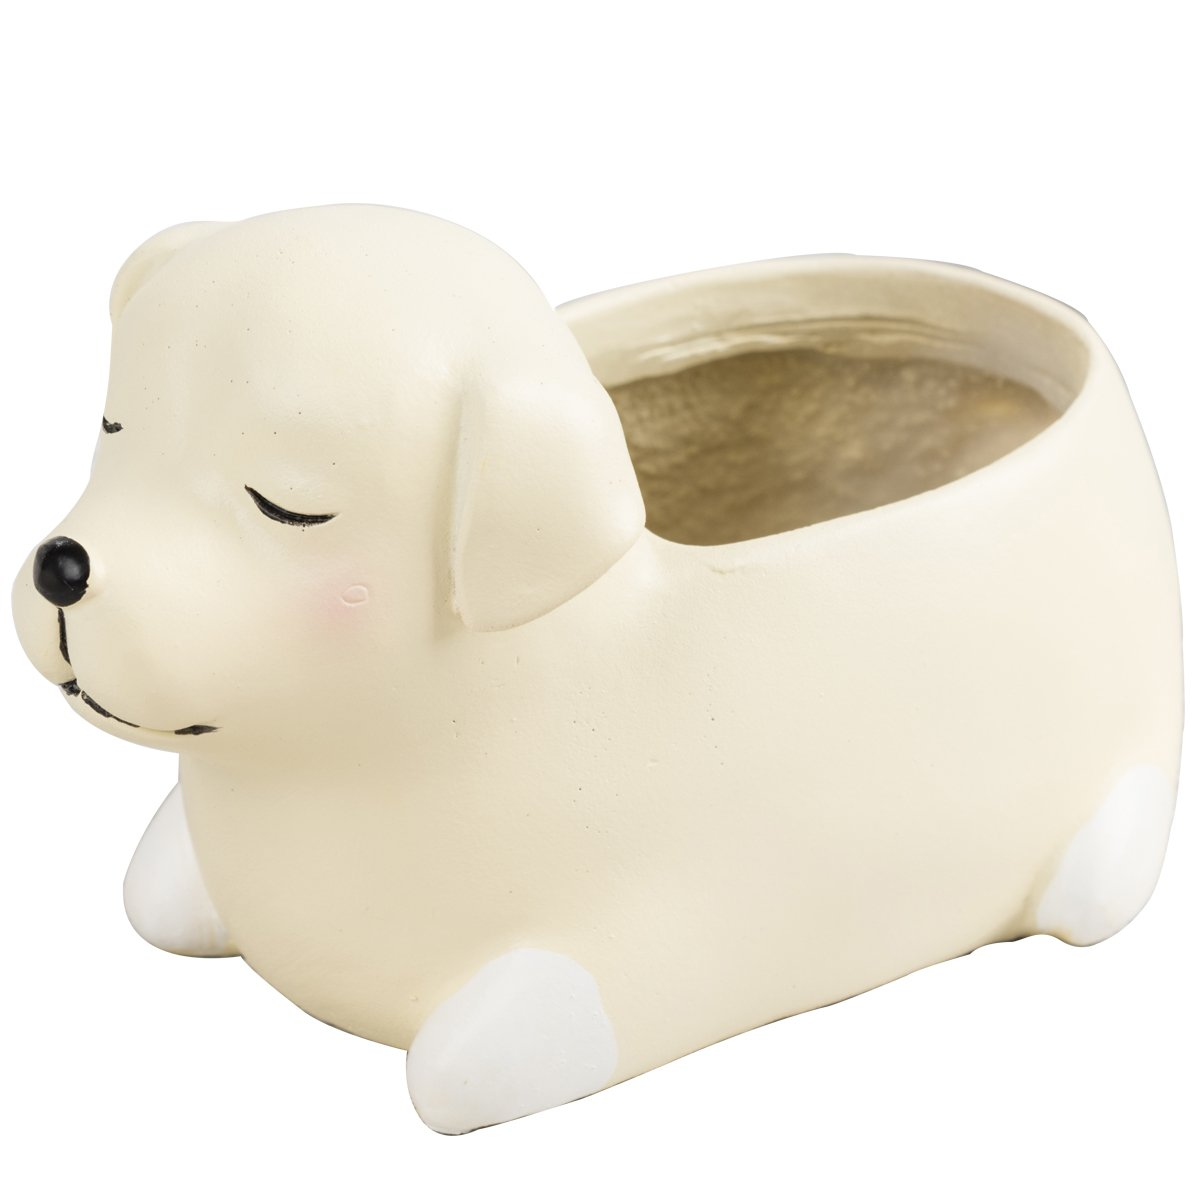 Mini Labrador Succulent Planter Cacti Pots Tiny Flower Containers Decorative with Cute Colorful Animal Shape (Puppy)